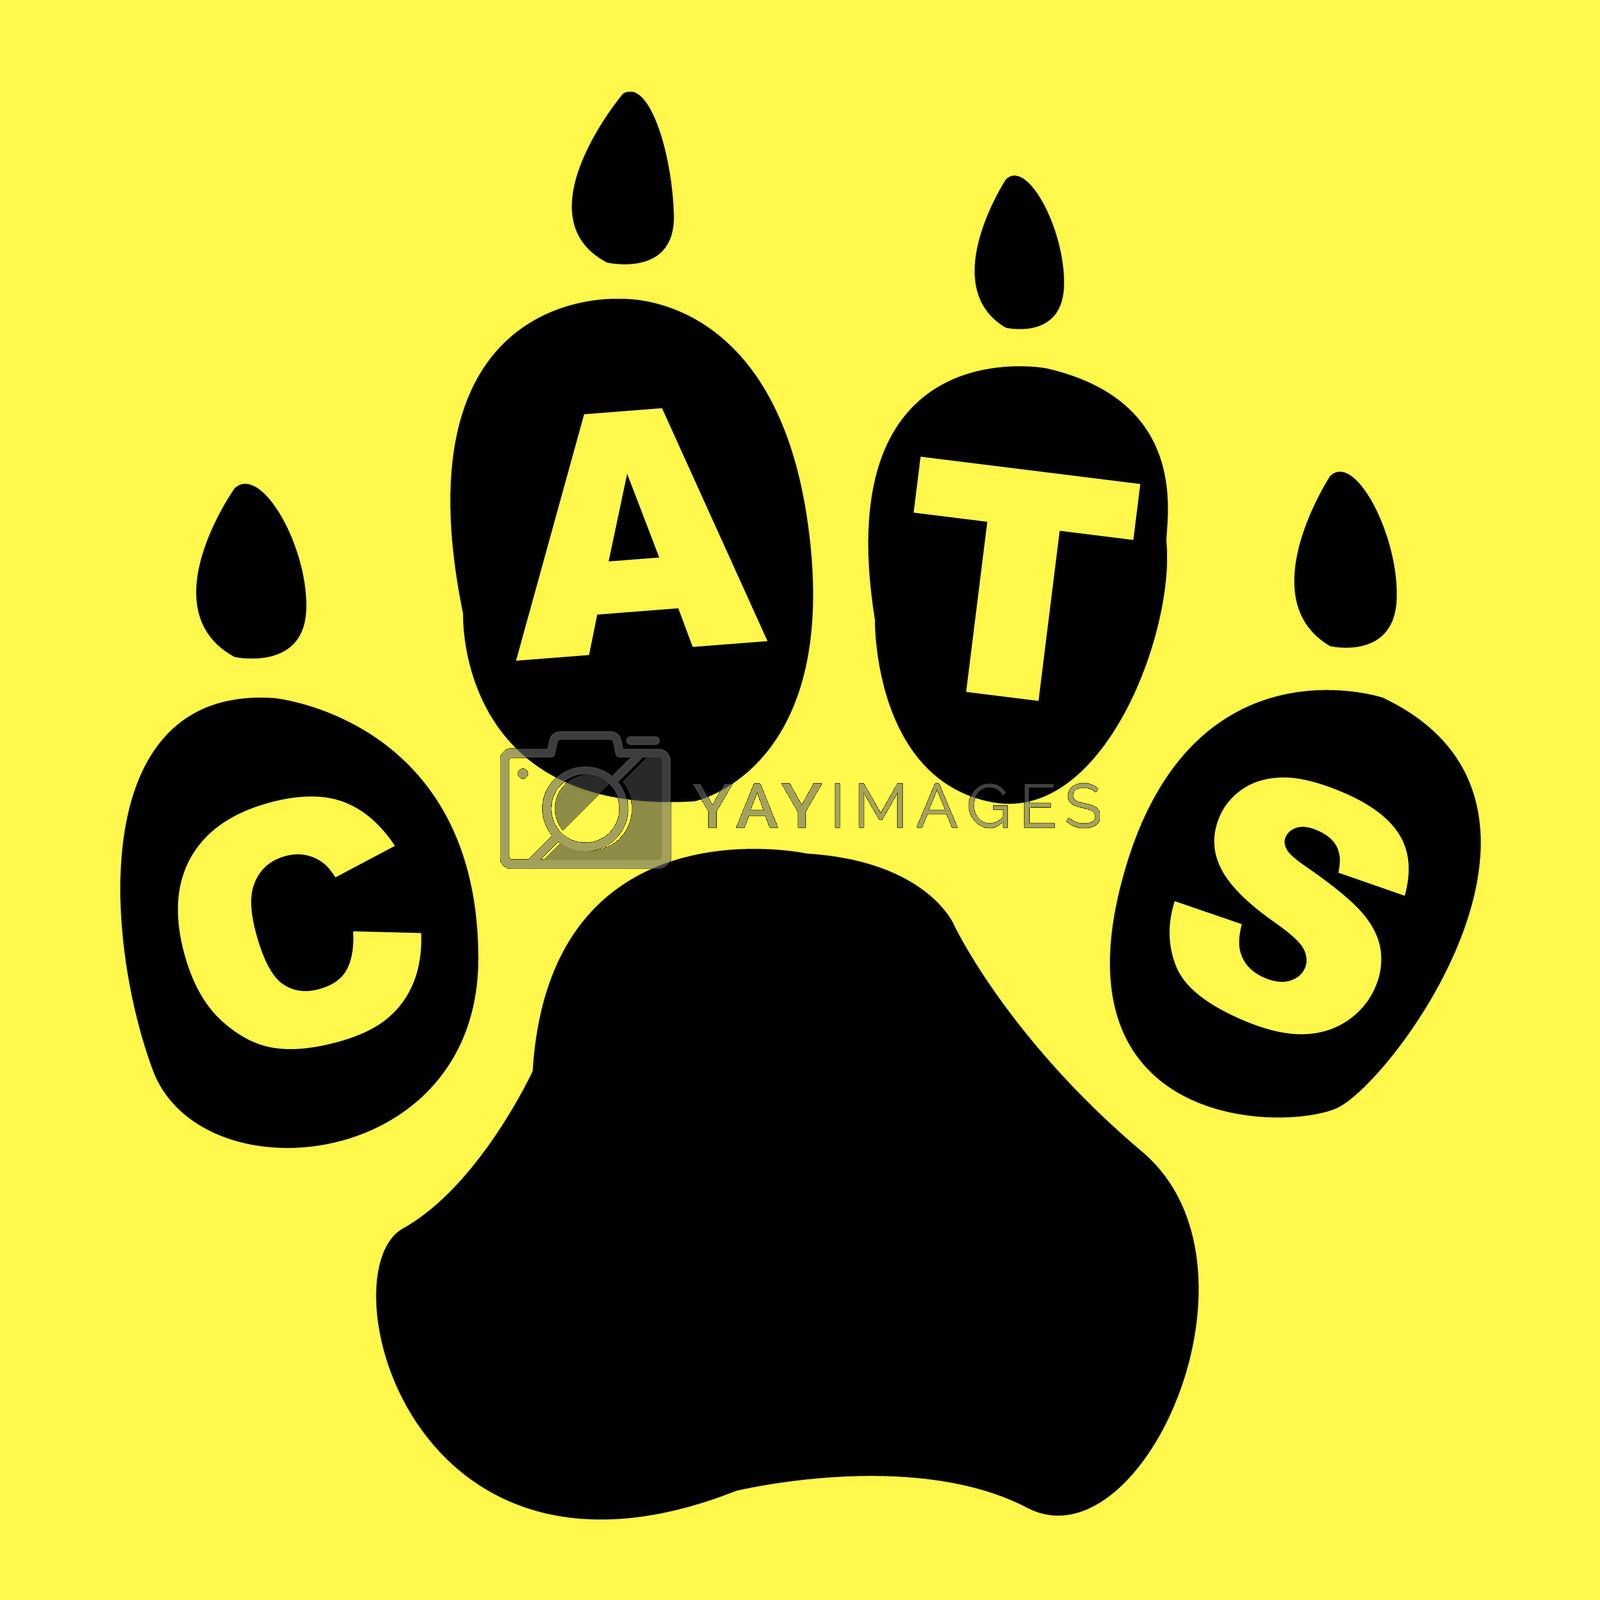 Cats Paw Represents Pet Care And Feline by stuartmiles